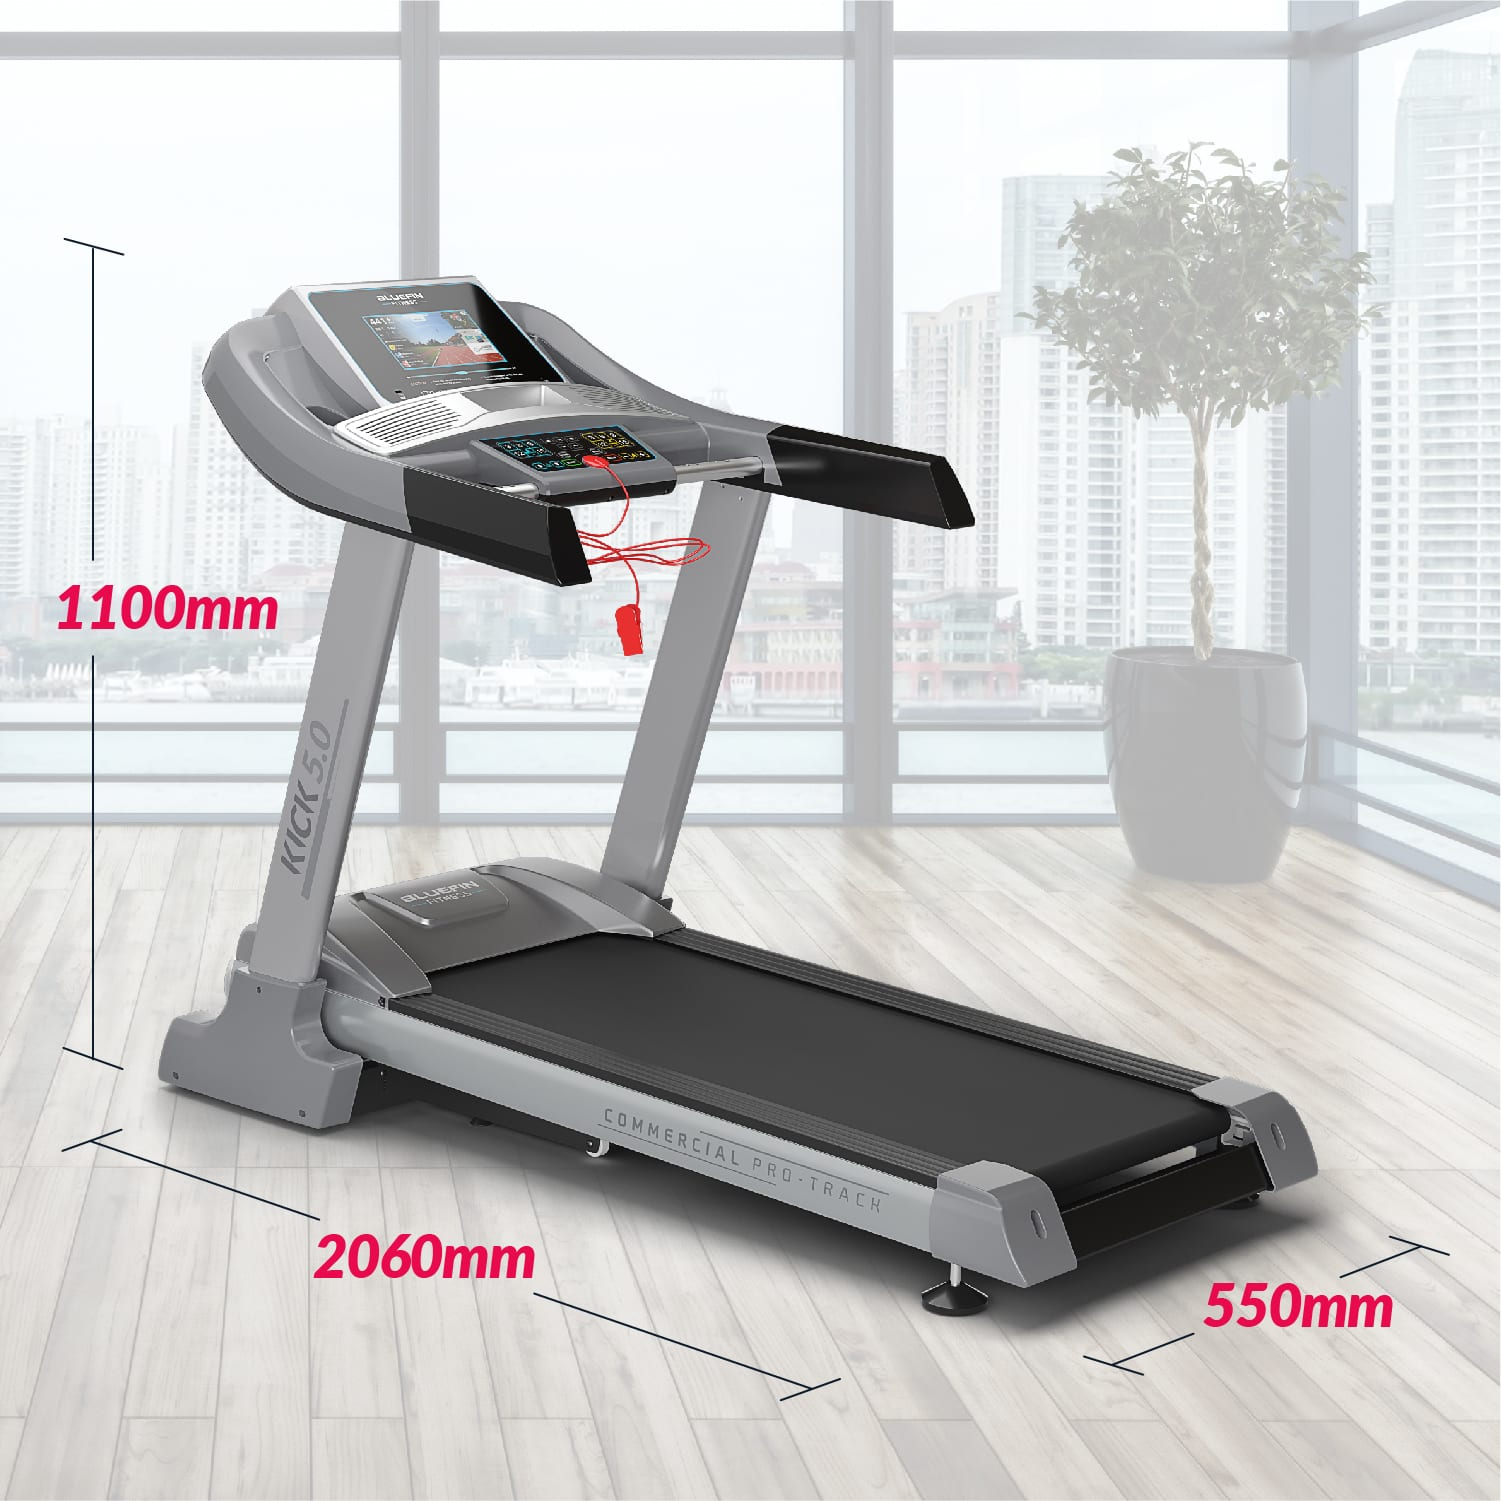 , Bluefin Fitness Kick 5.0. Folding Treadmill | 24 km/h + 5.0 HP + 20 Incline Levels | Home Gym Equipment | High Speed |10.1' TFT Screen | Heartrate sensors + Built-in Shock Absorption | Bluetooth